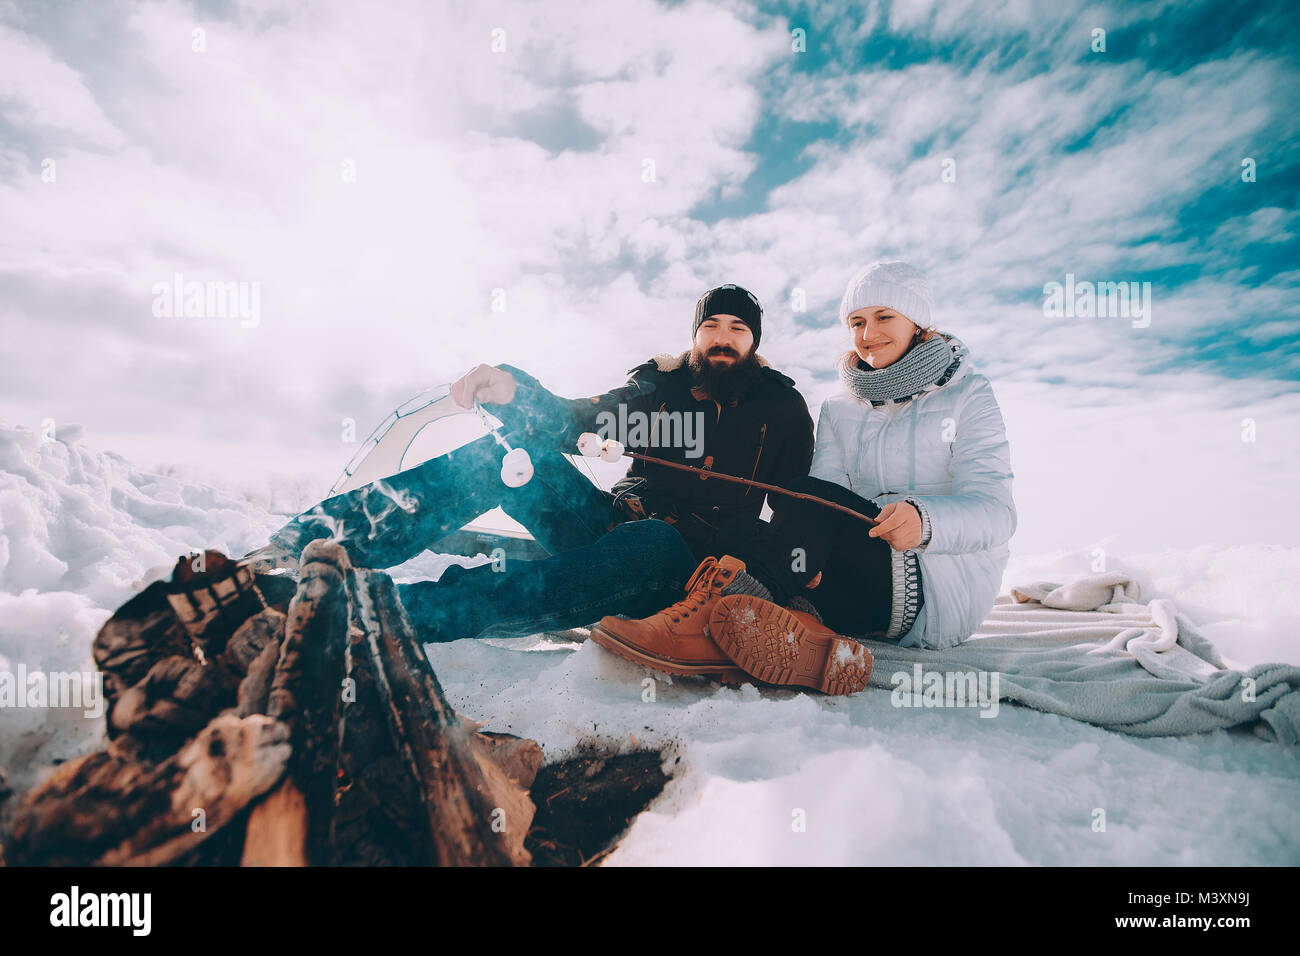 lovers roast marshmallow over a campfire - Stock Image